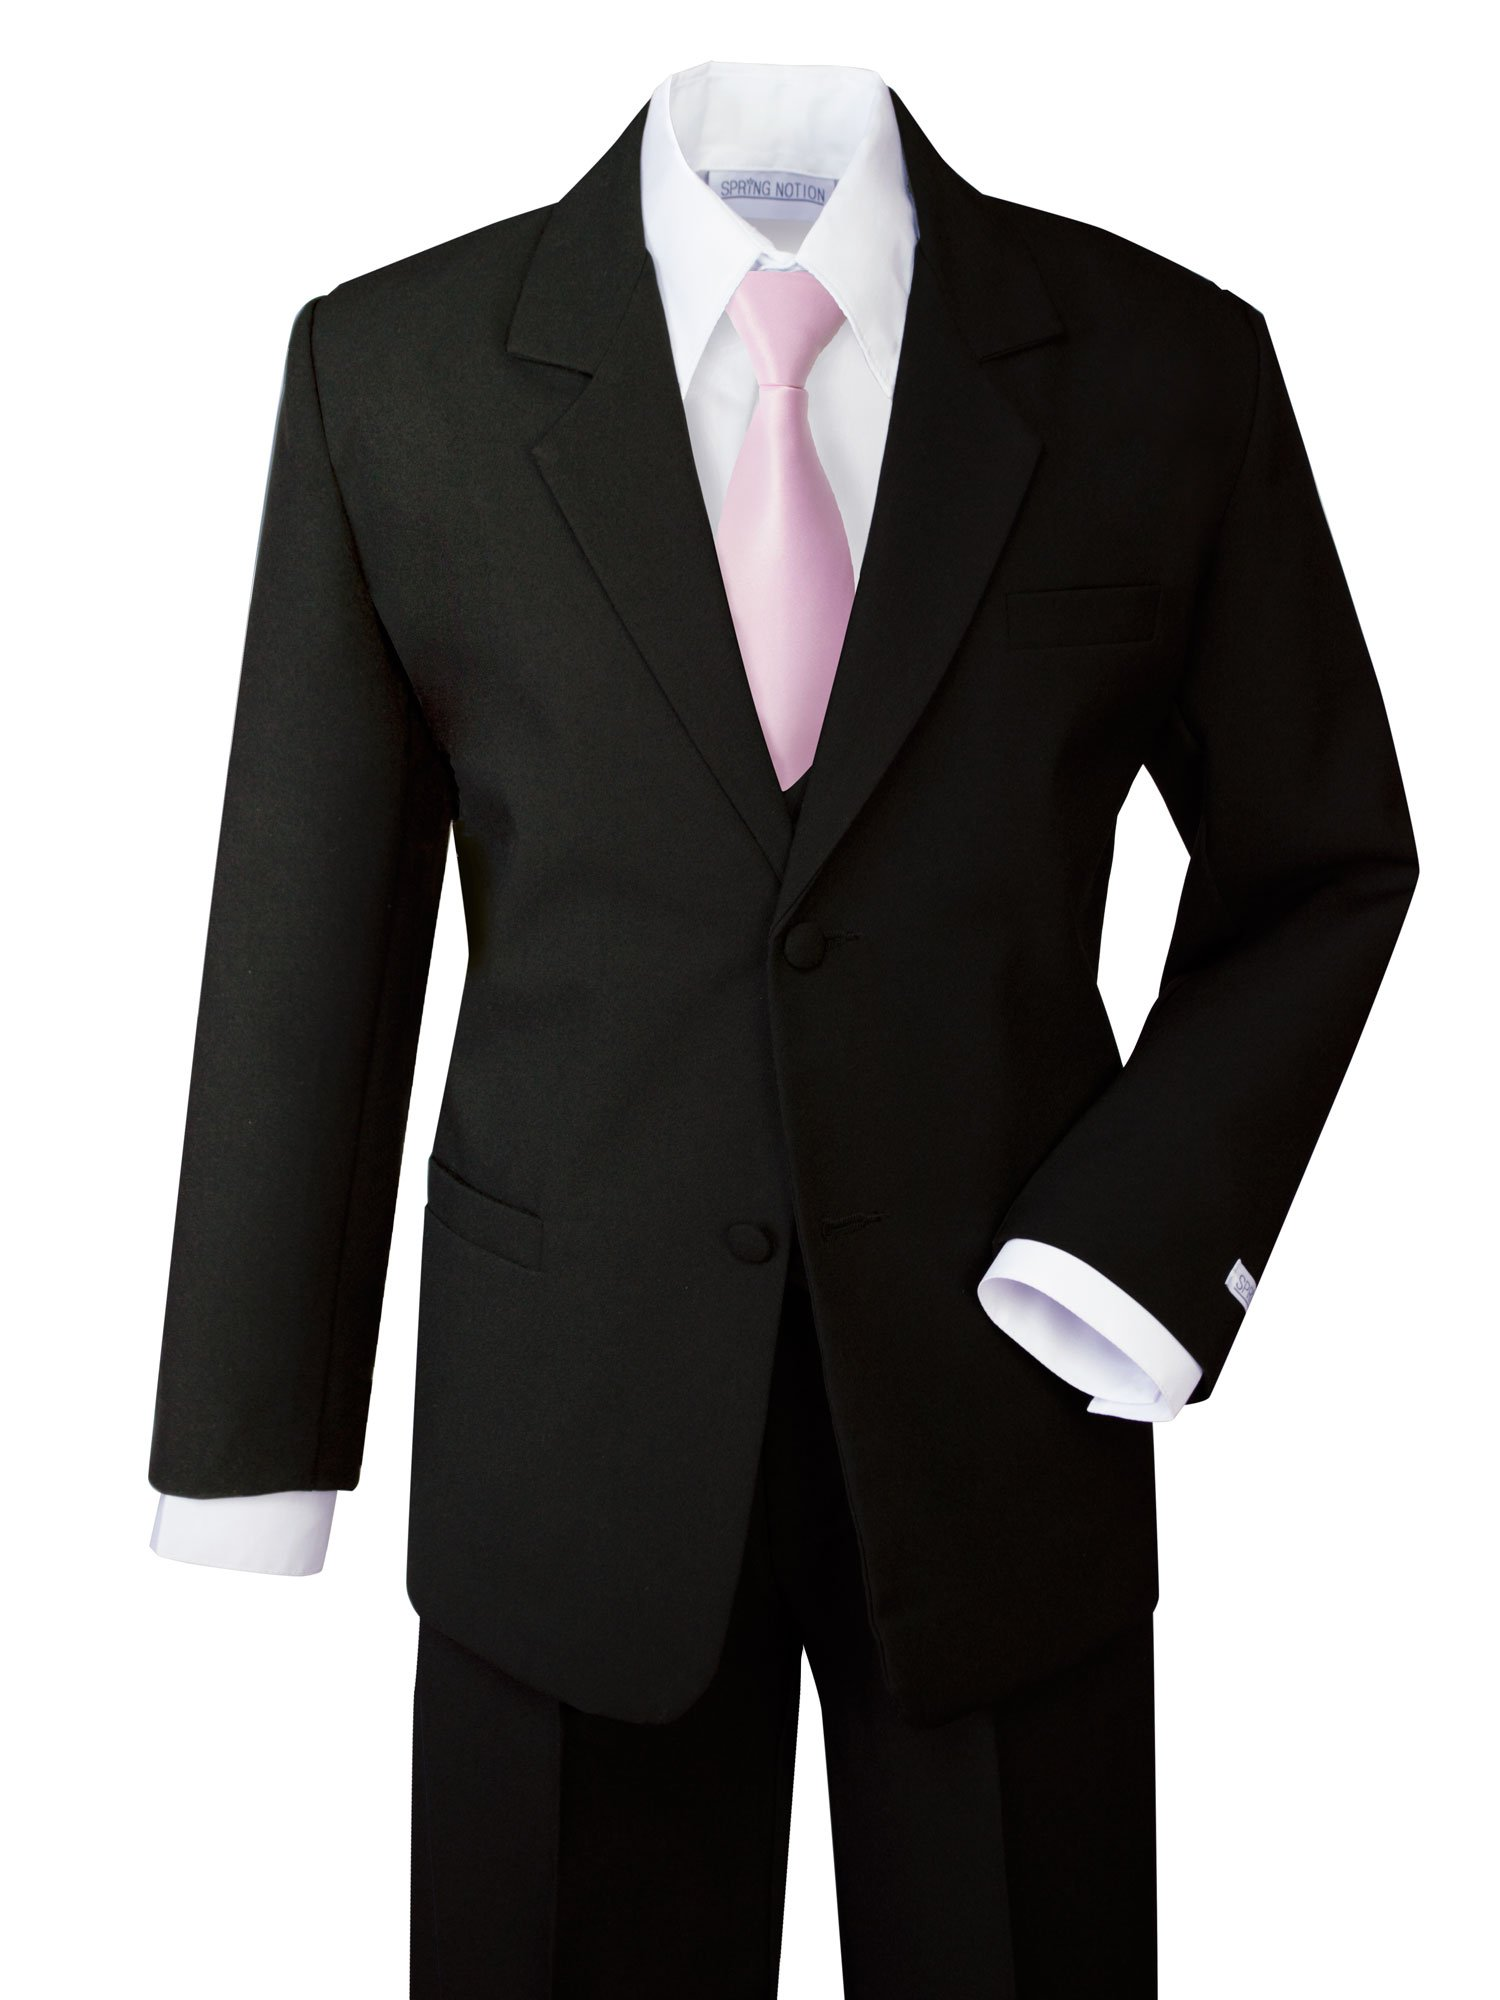 2212b520873 Galleon - Spring Notion Boys  Formal Dress Suit Set 14 Black Suit Pink Tie